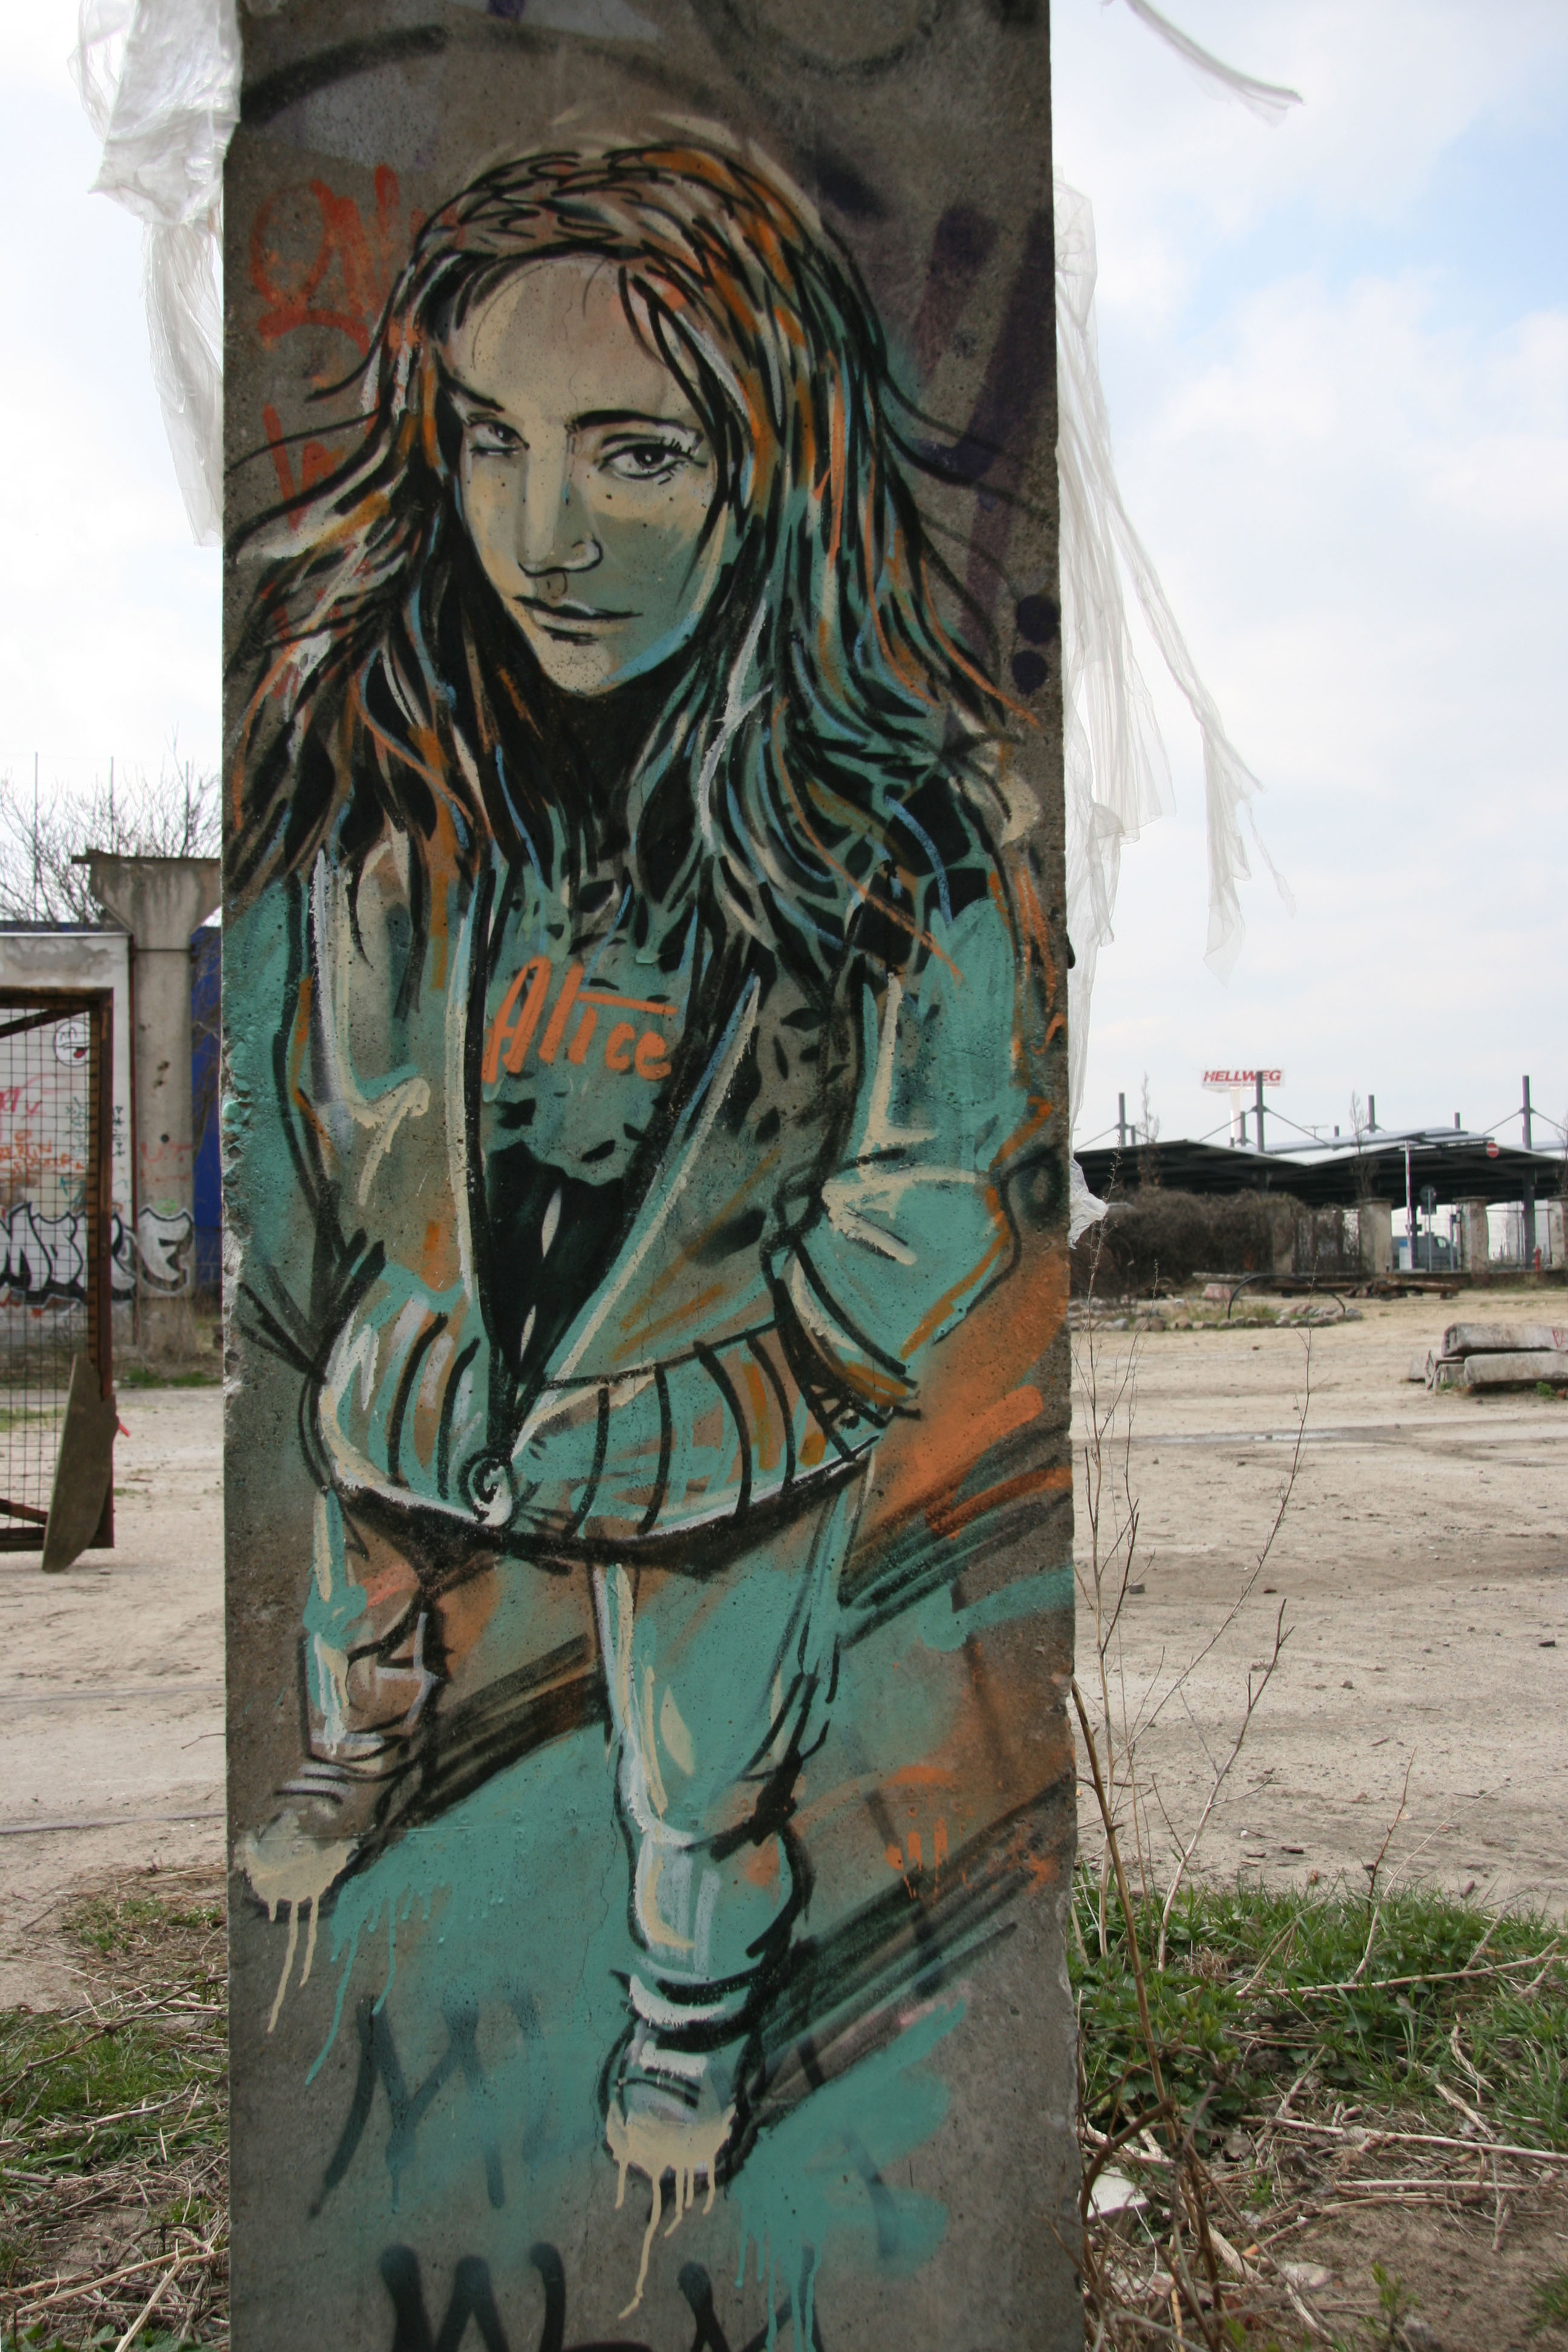 Girl on a Pole: Street Art by AliCé (Alice Pasquini) in Berlin